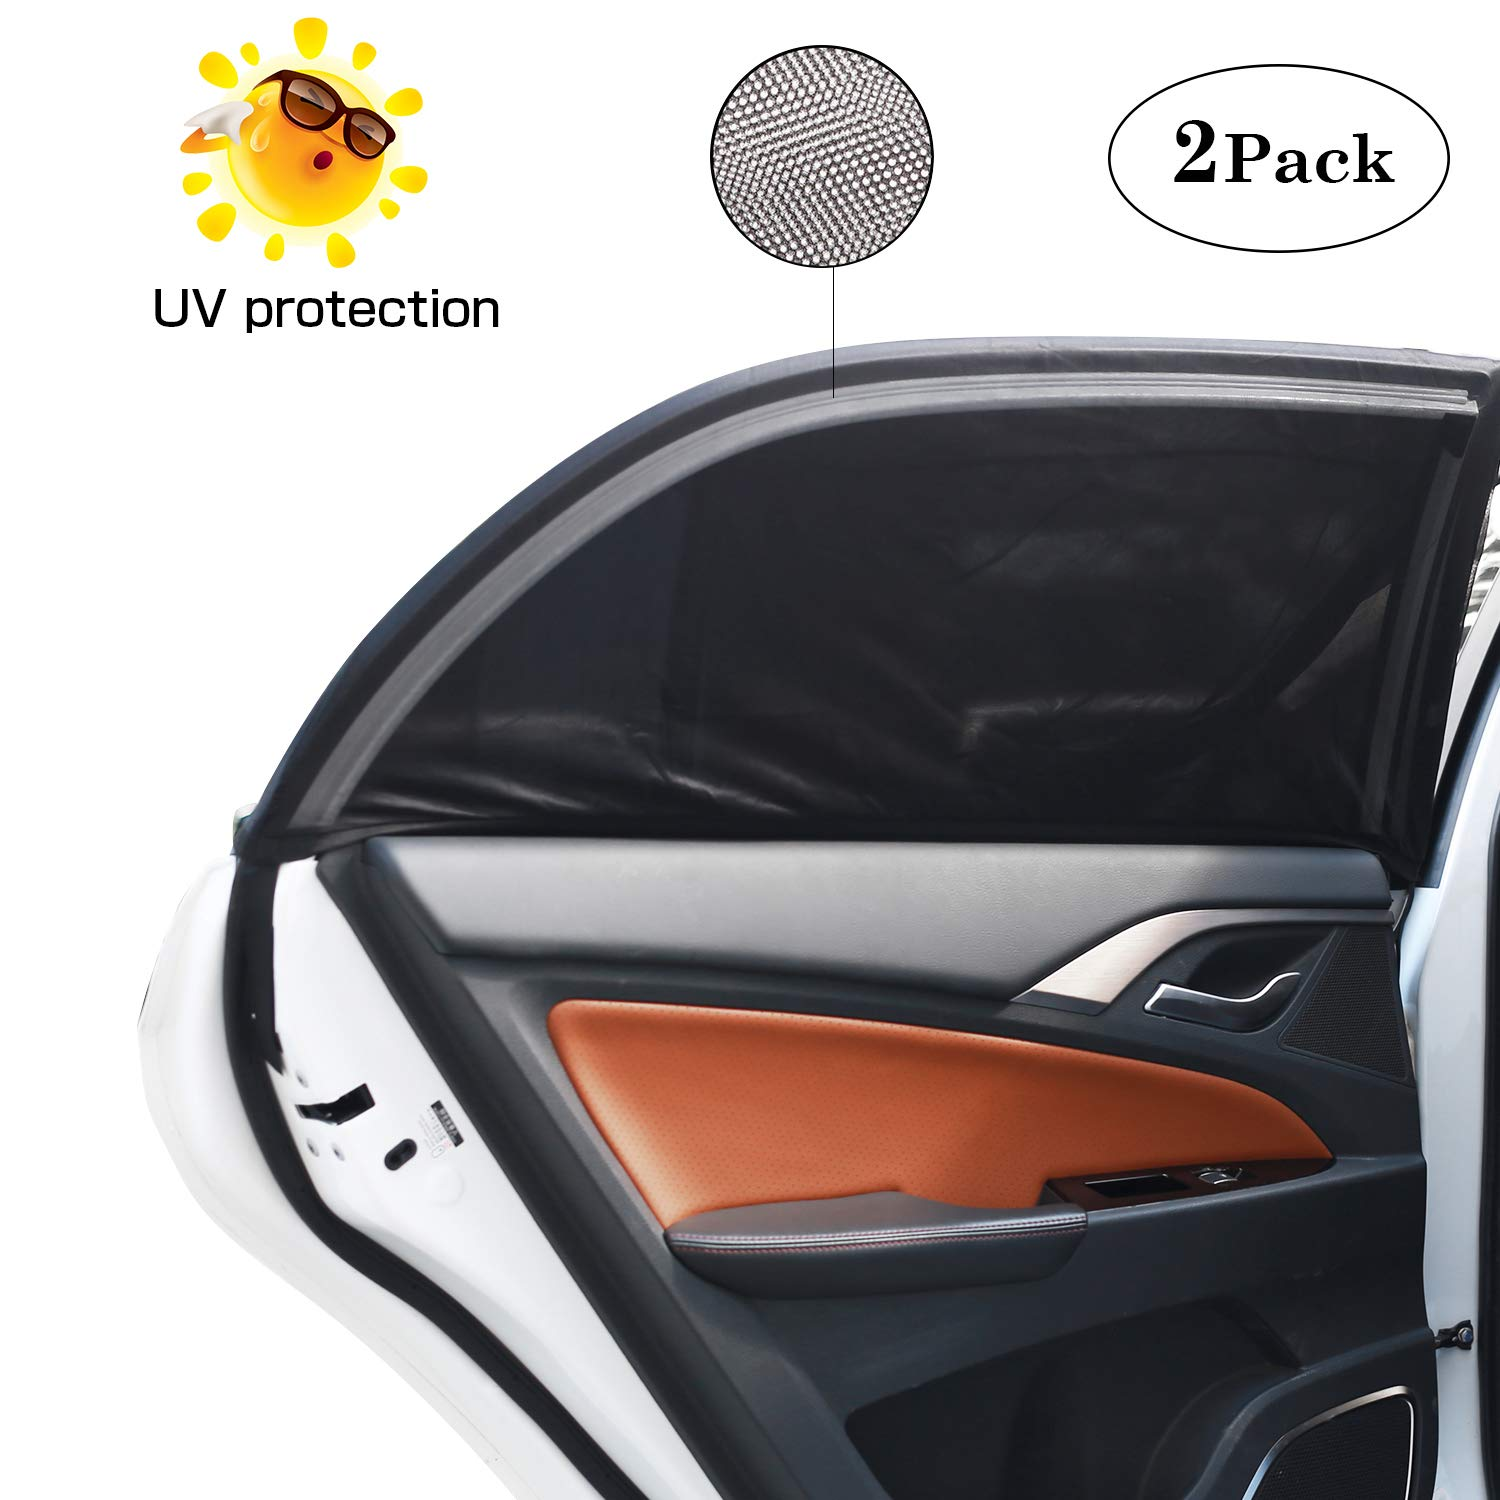 Car Window Shades Cover Car Side Rear Sun Shield Protect Your Baby, Child, Kids, Pet from Sun- Block UV Rays - Universal Car Curtains Breathable Mesh Fit Full Size Cars (L) bedee